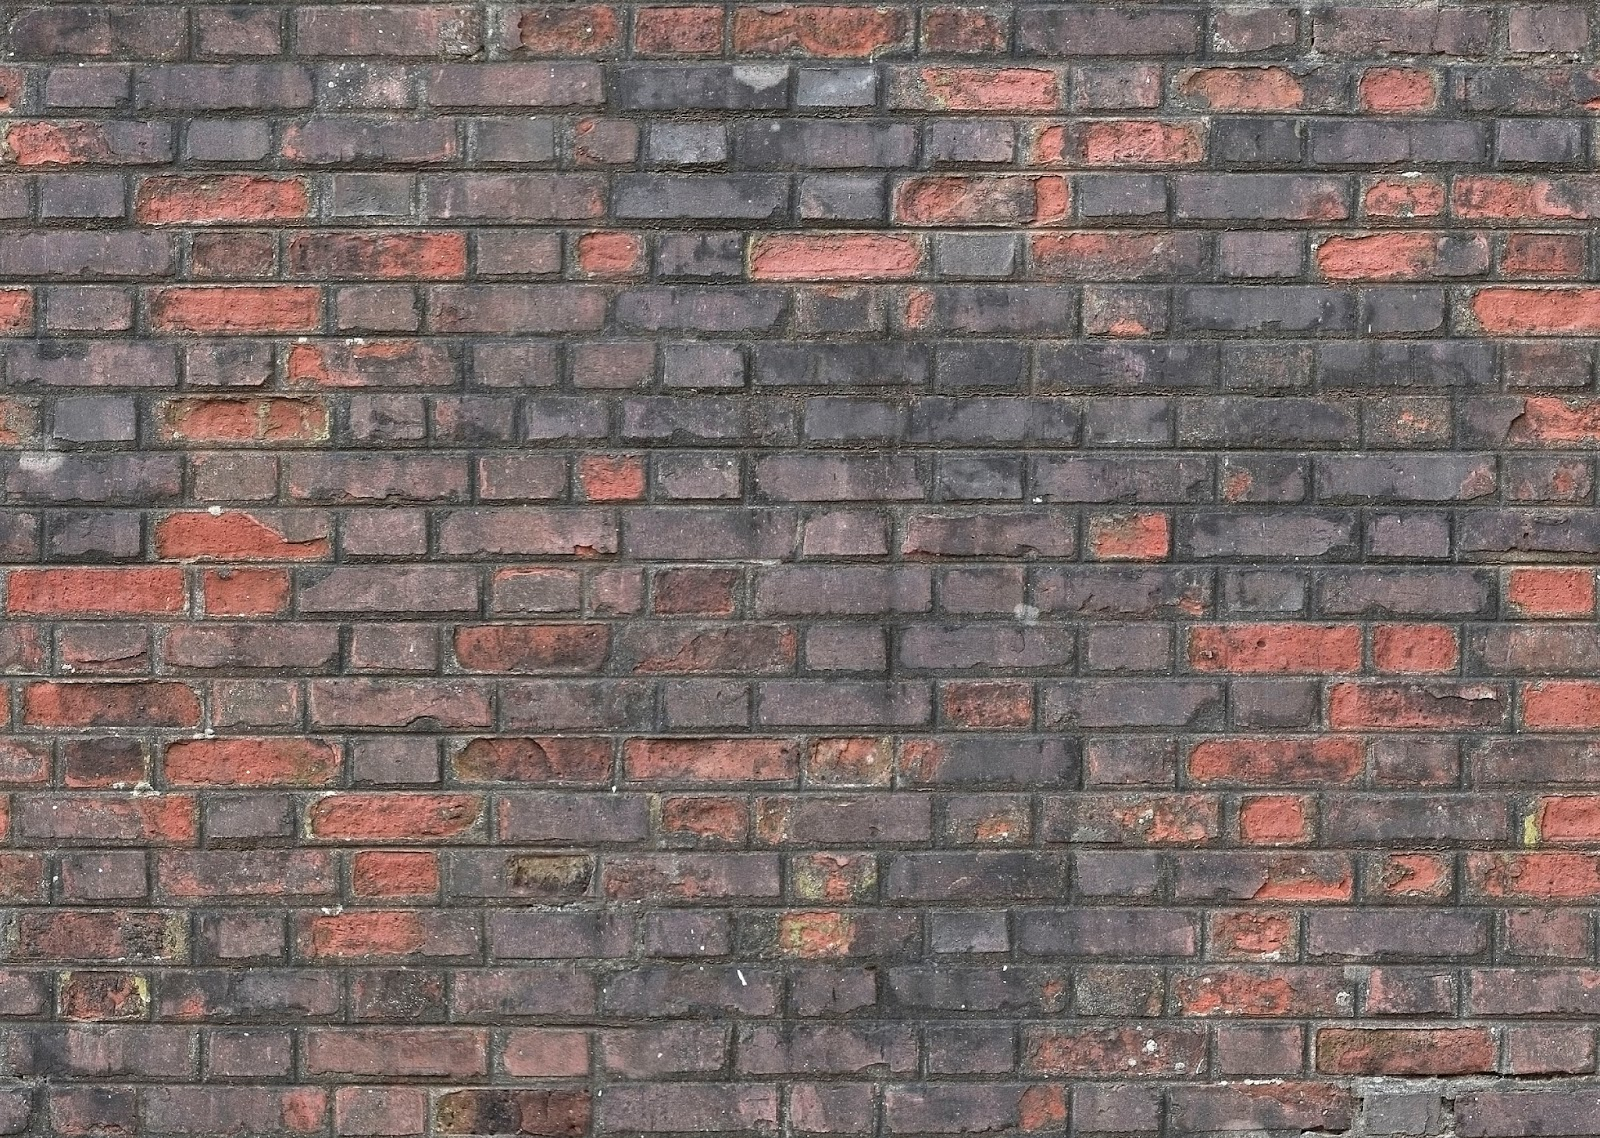 Tileable Brick Wall Texture With Maps Texturise Free